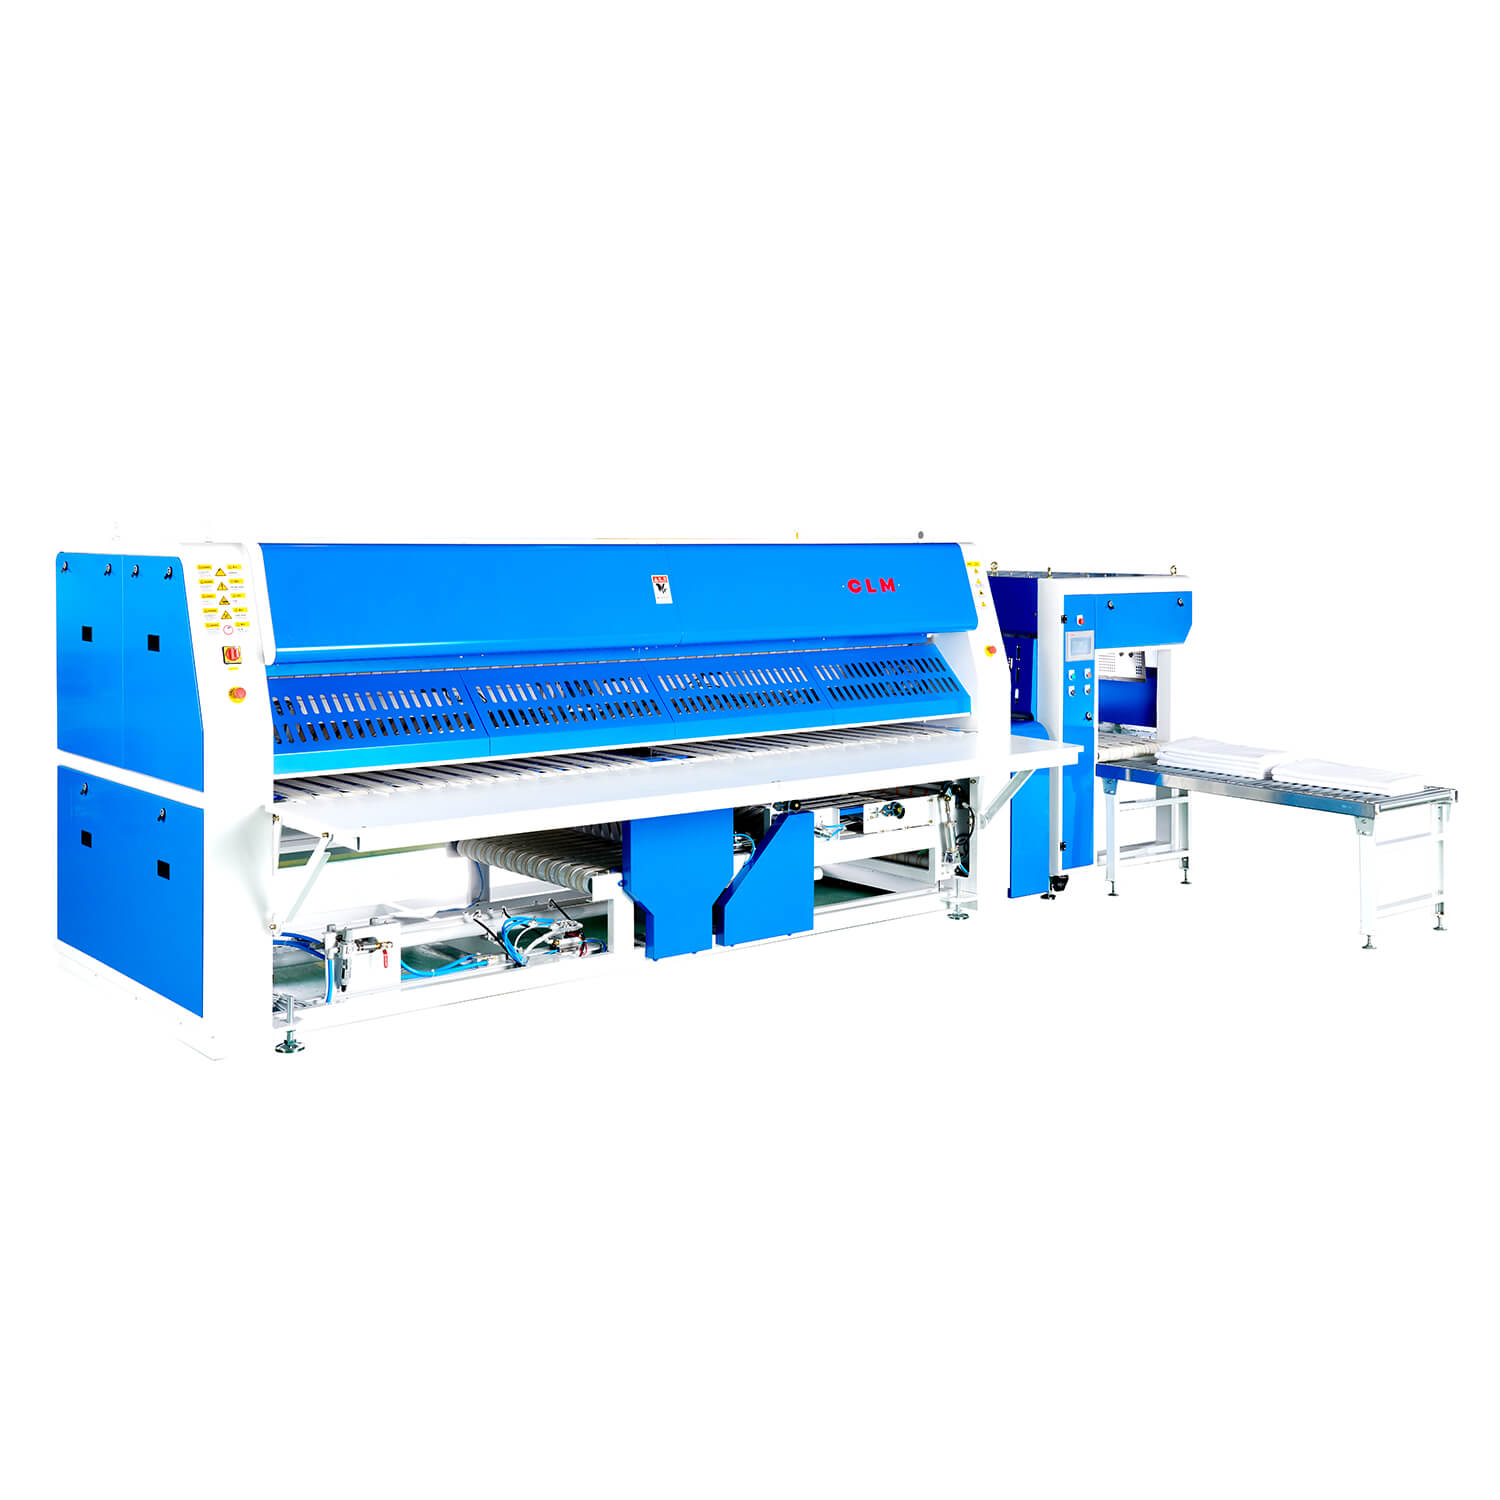 Rapid Folding Machine, Up To 60 Meters Per Minute And Can Fold 1200 Piece of Bed Sheets Per Hour